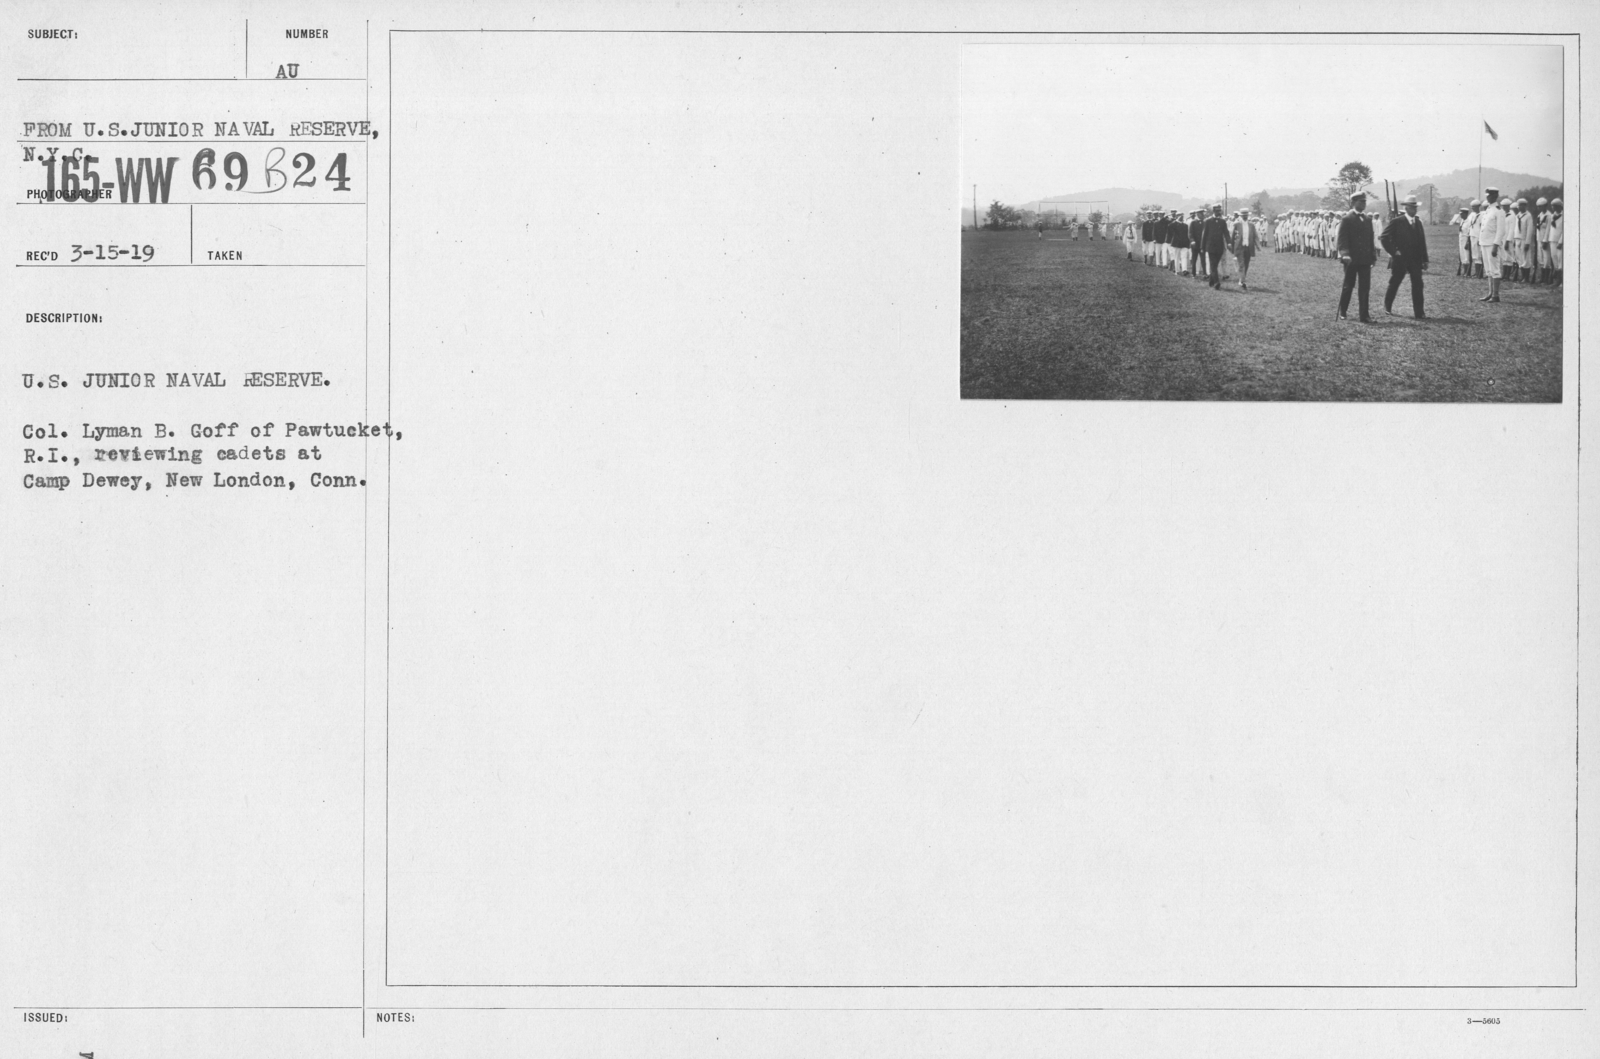 Boy's Activities - Junior Naval Reserve - Camp Dewey, Conn. - U.S. Junior Naval Reserve. Col. Lyman B. Goff of Pawtucket, R.I., reviewing cadets at Camp Dewey, New London, Conn